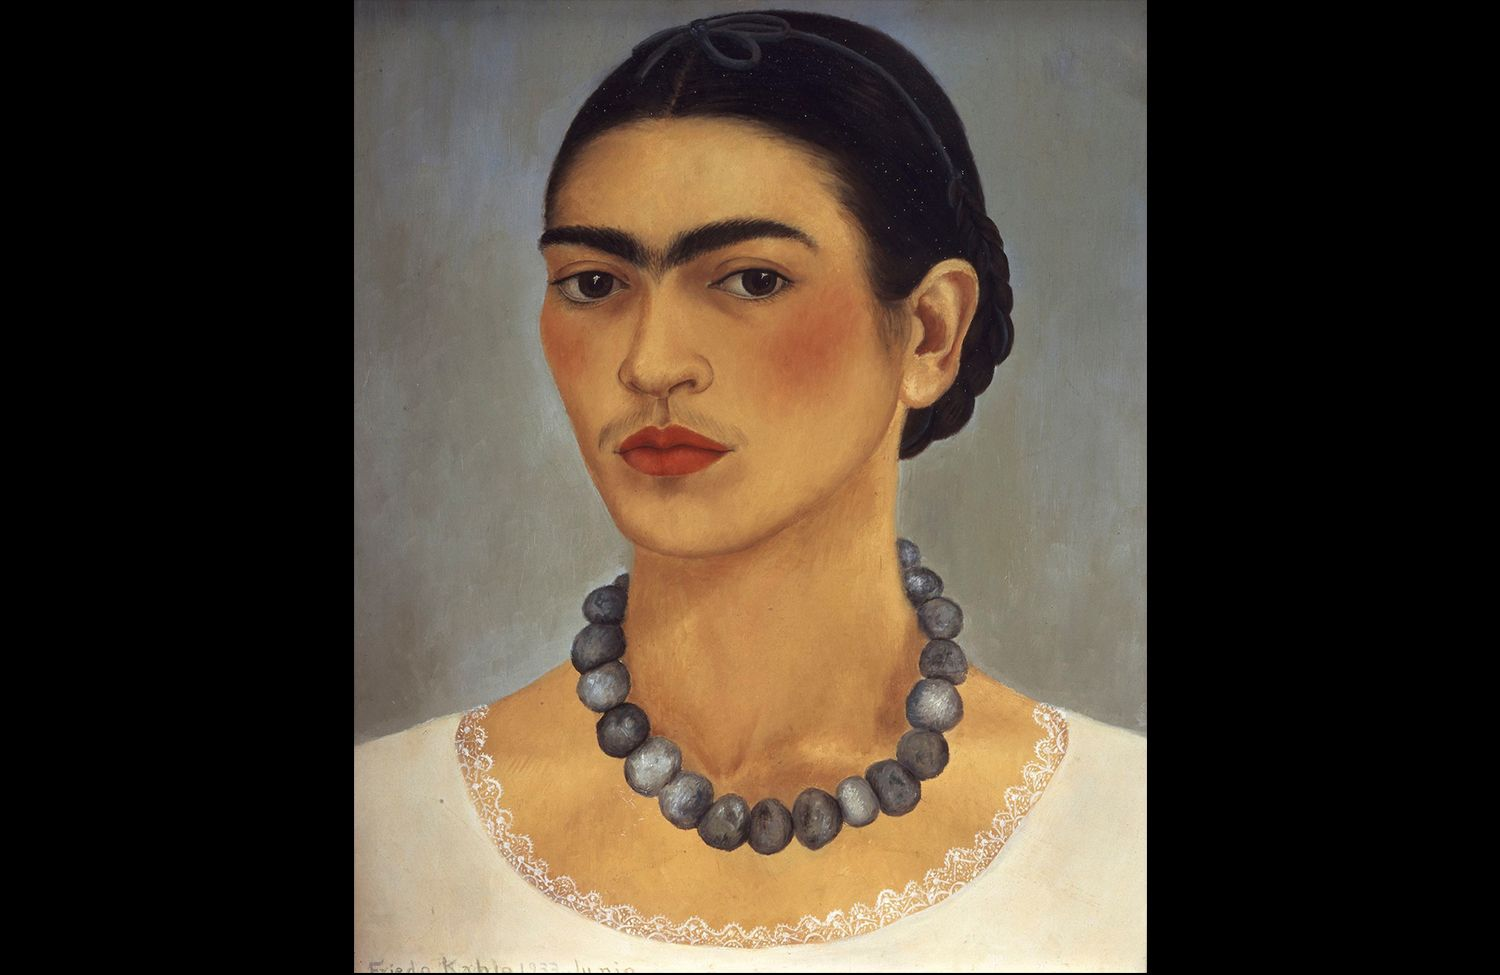 Frida Kahlo: Appearances Can Be Deceiving 6